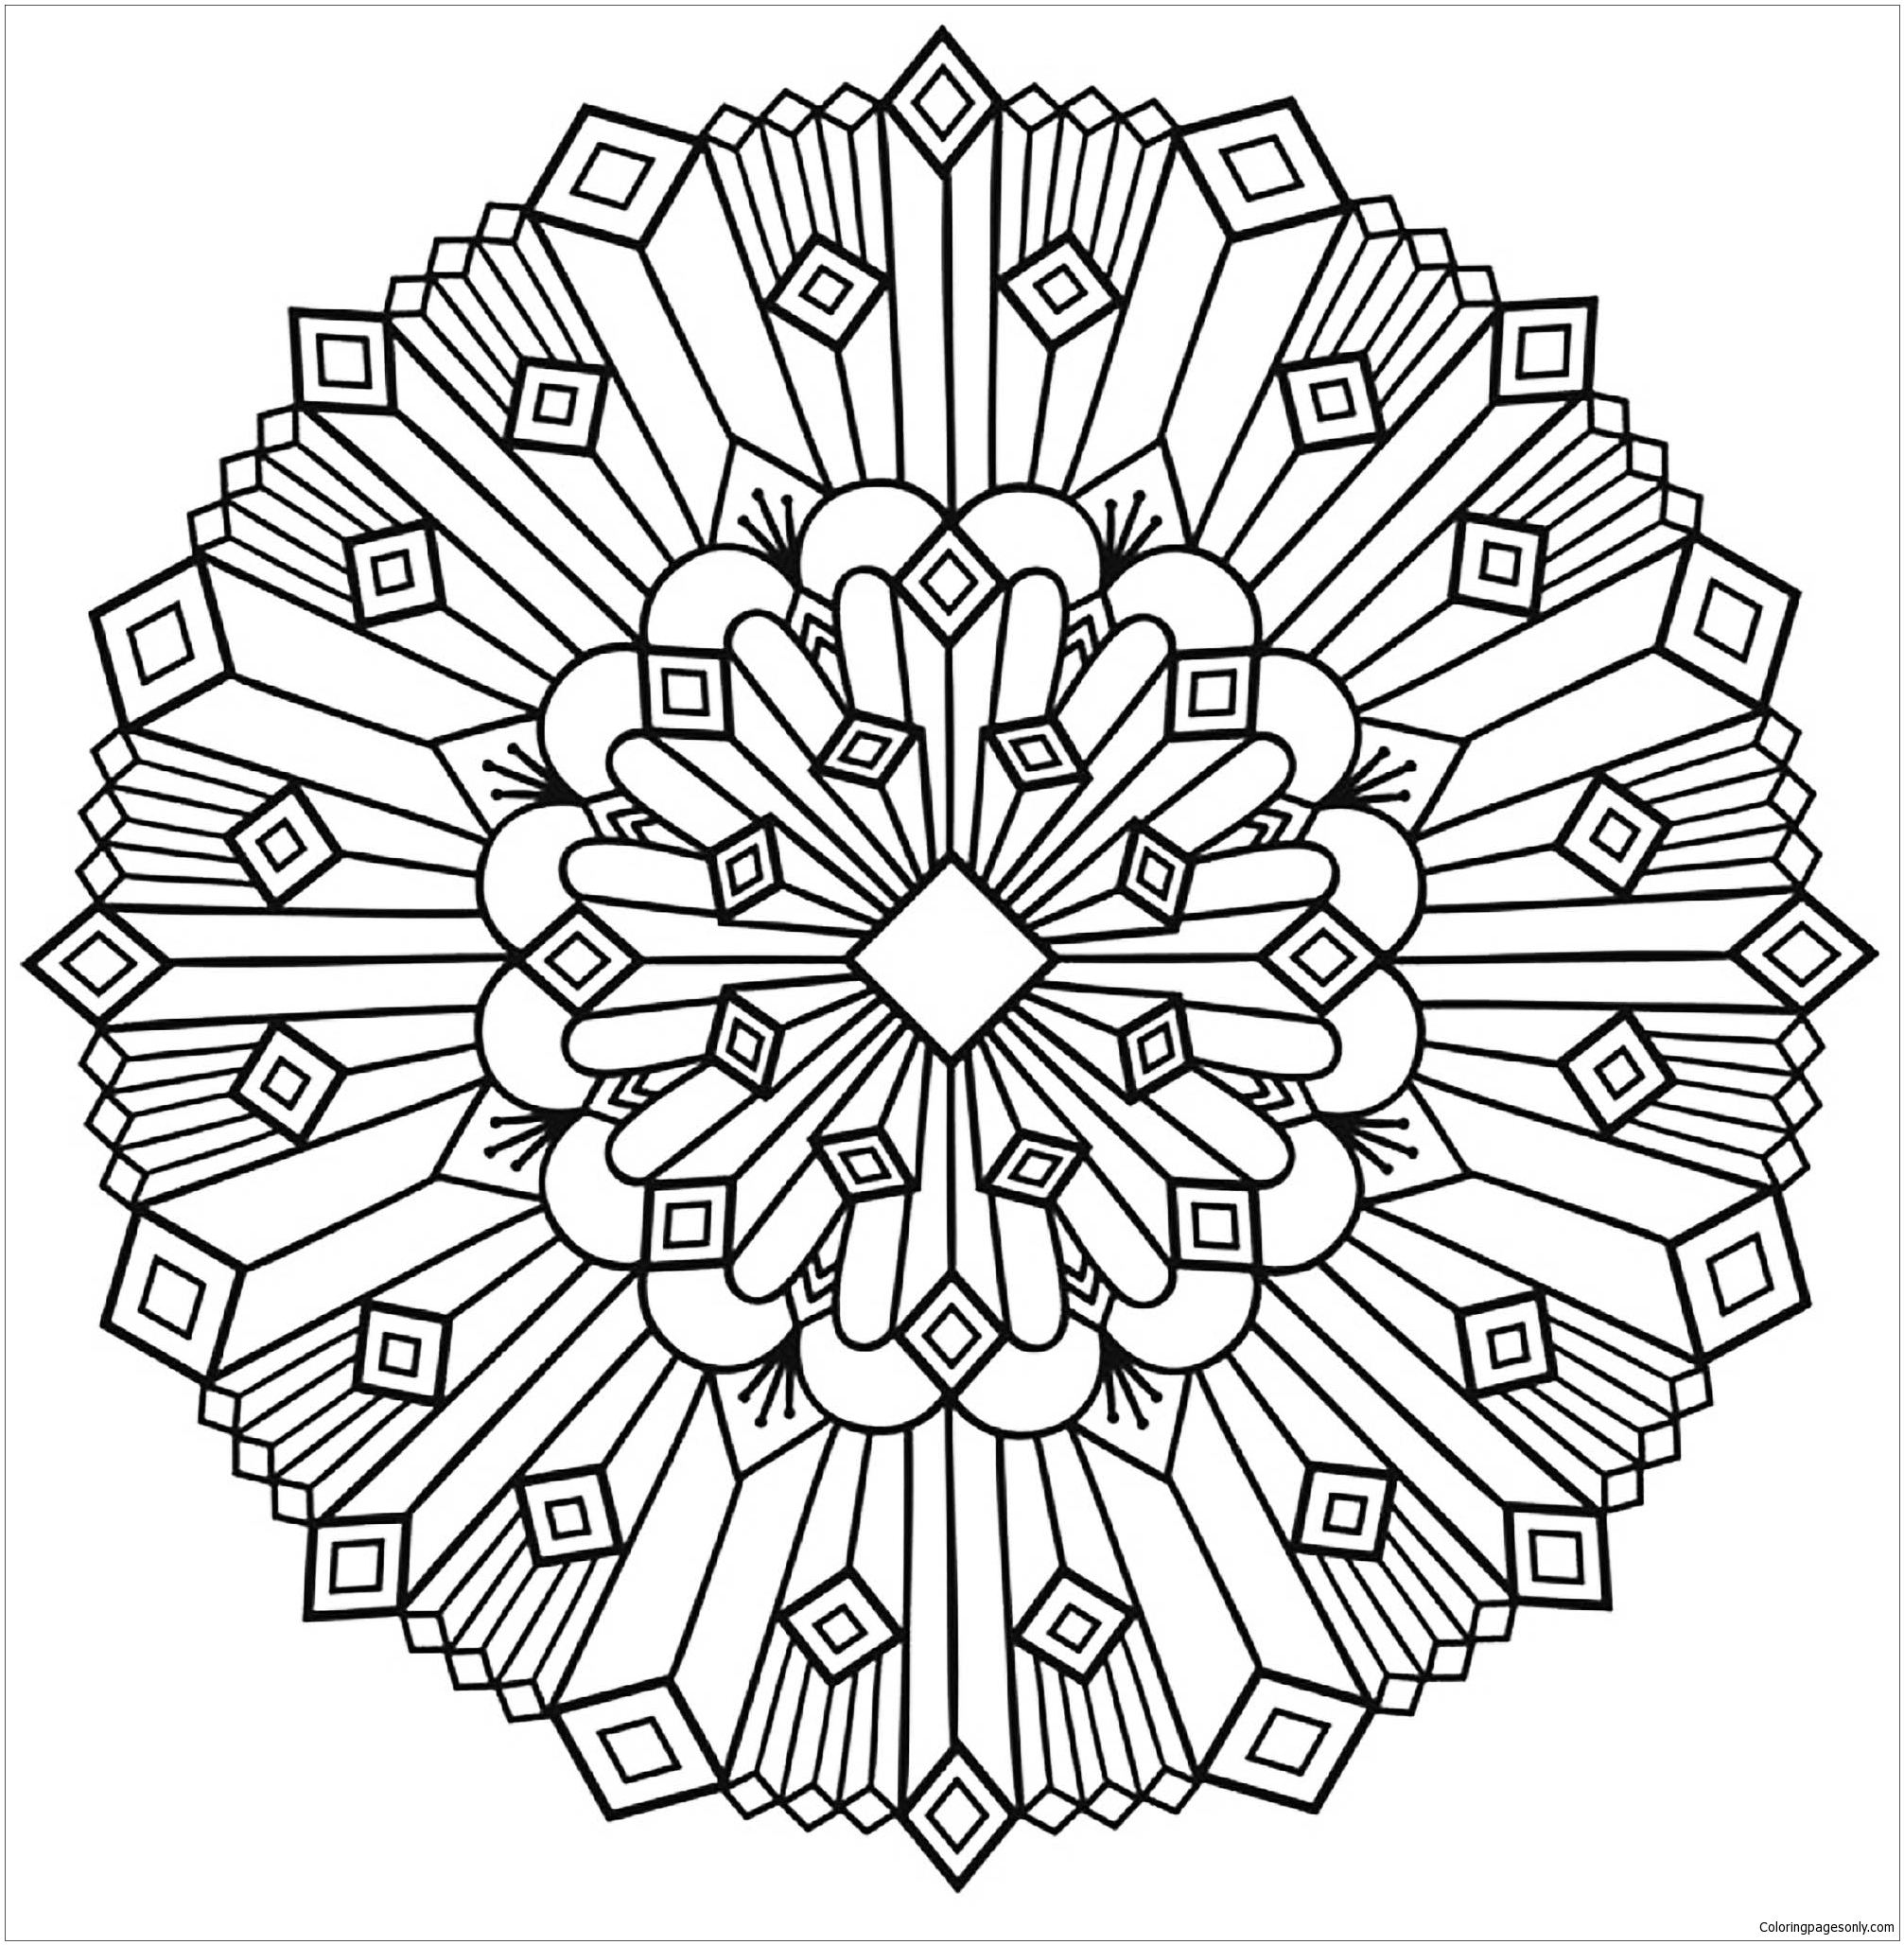 Simple Mandala 11 Coloring Page - Free Coloring Pages Online